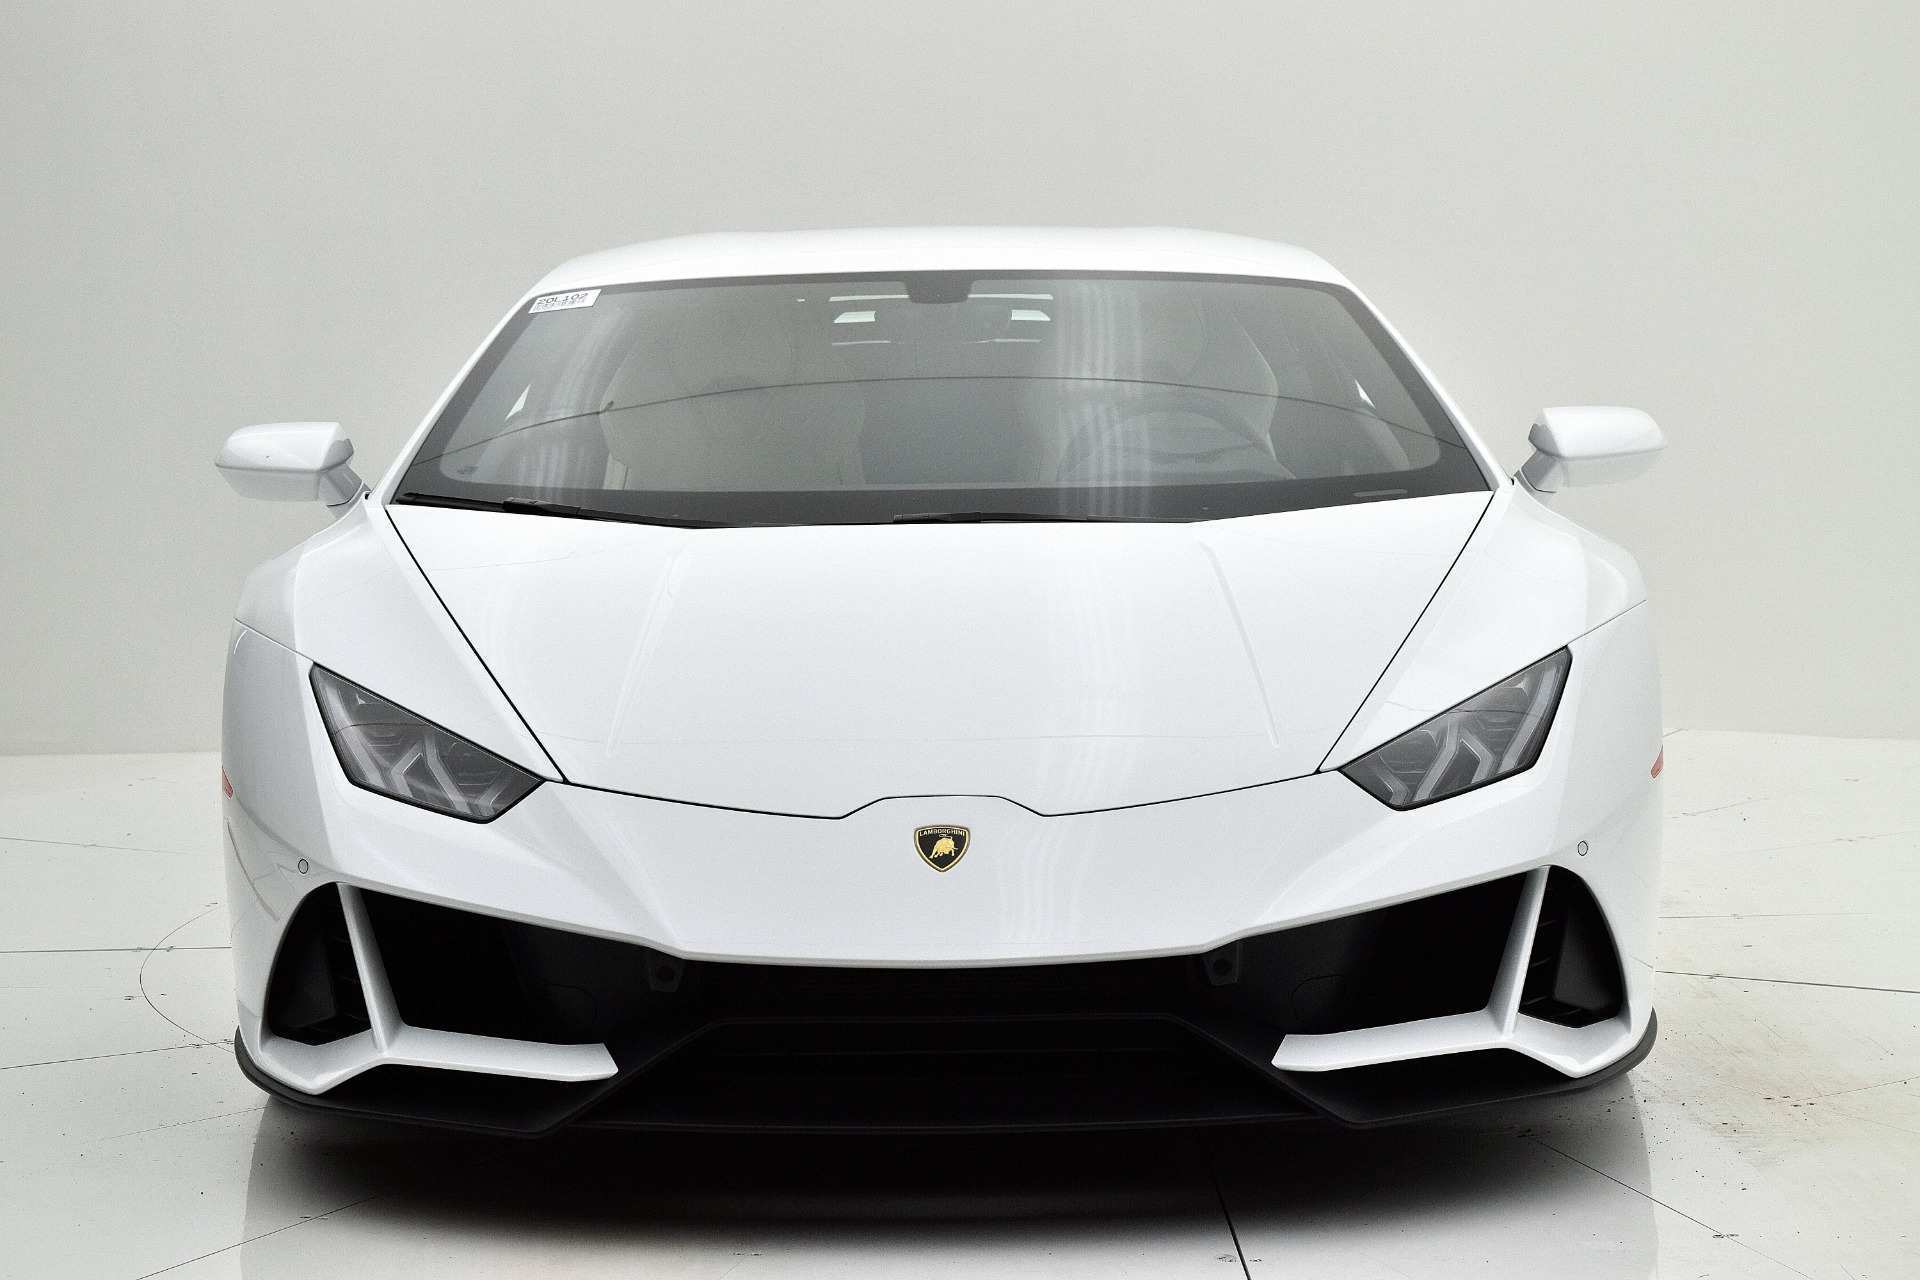 68 All New 2020 Lamborghini Price Exterior And Interior